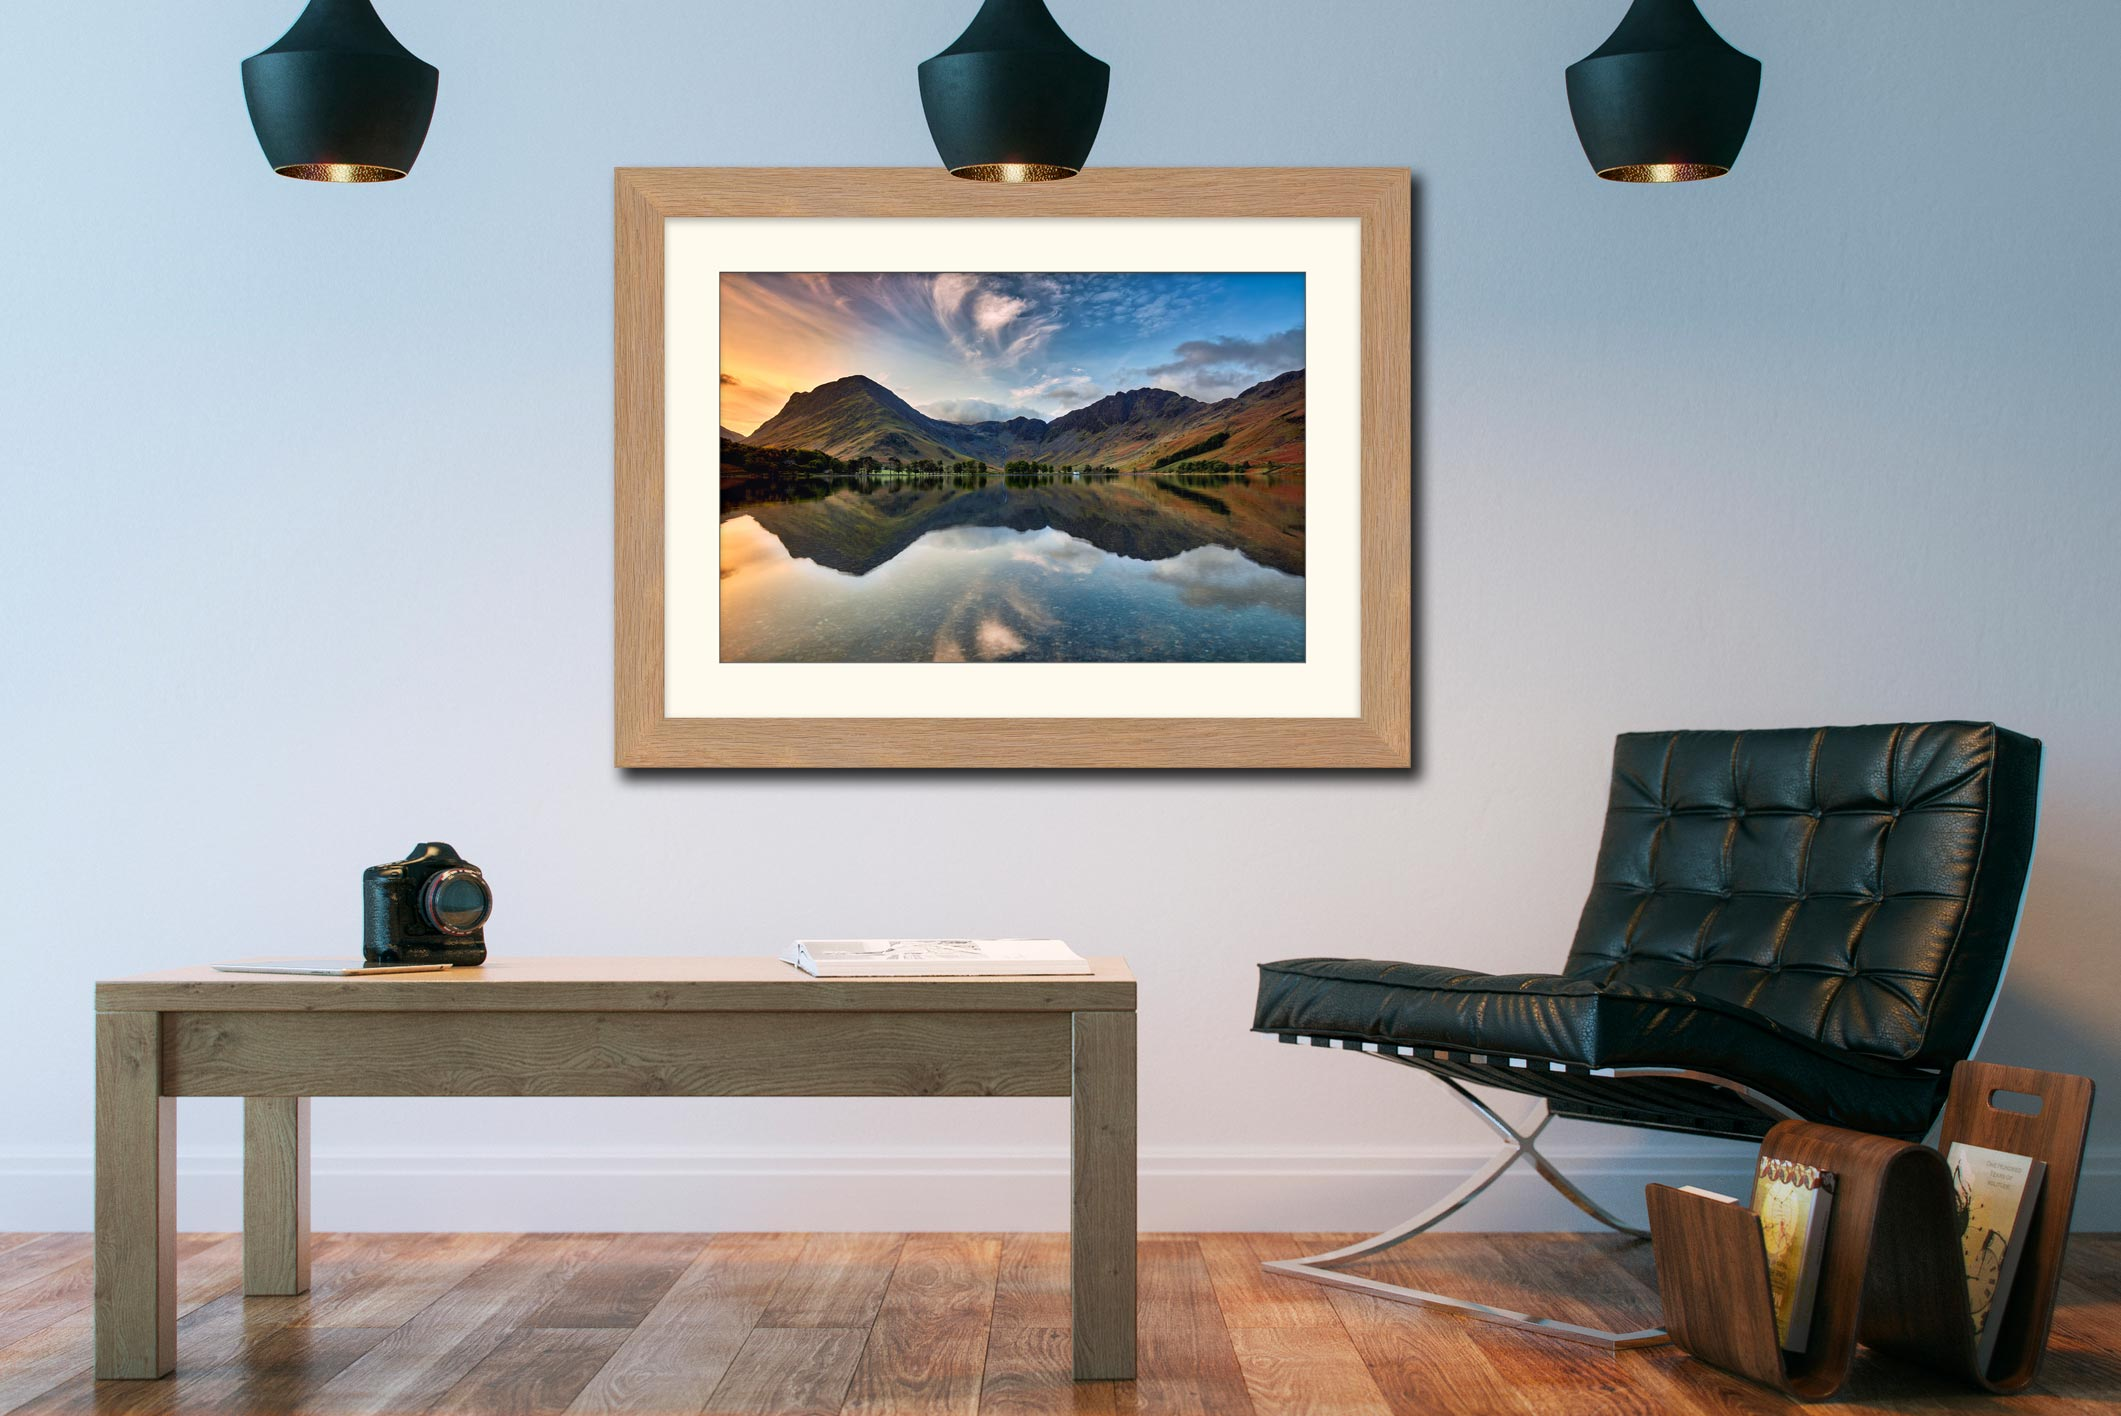 Breaking Dawn Buttermere – Framed Print with Mount on Wall